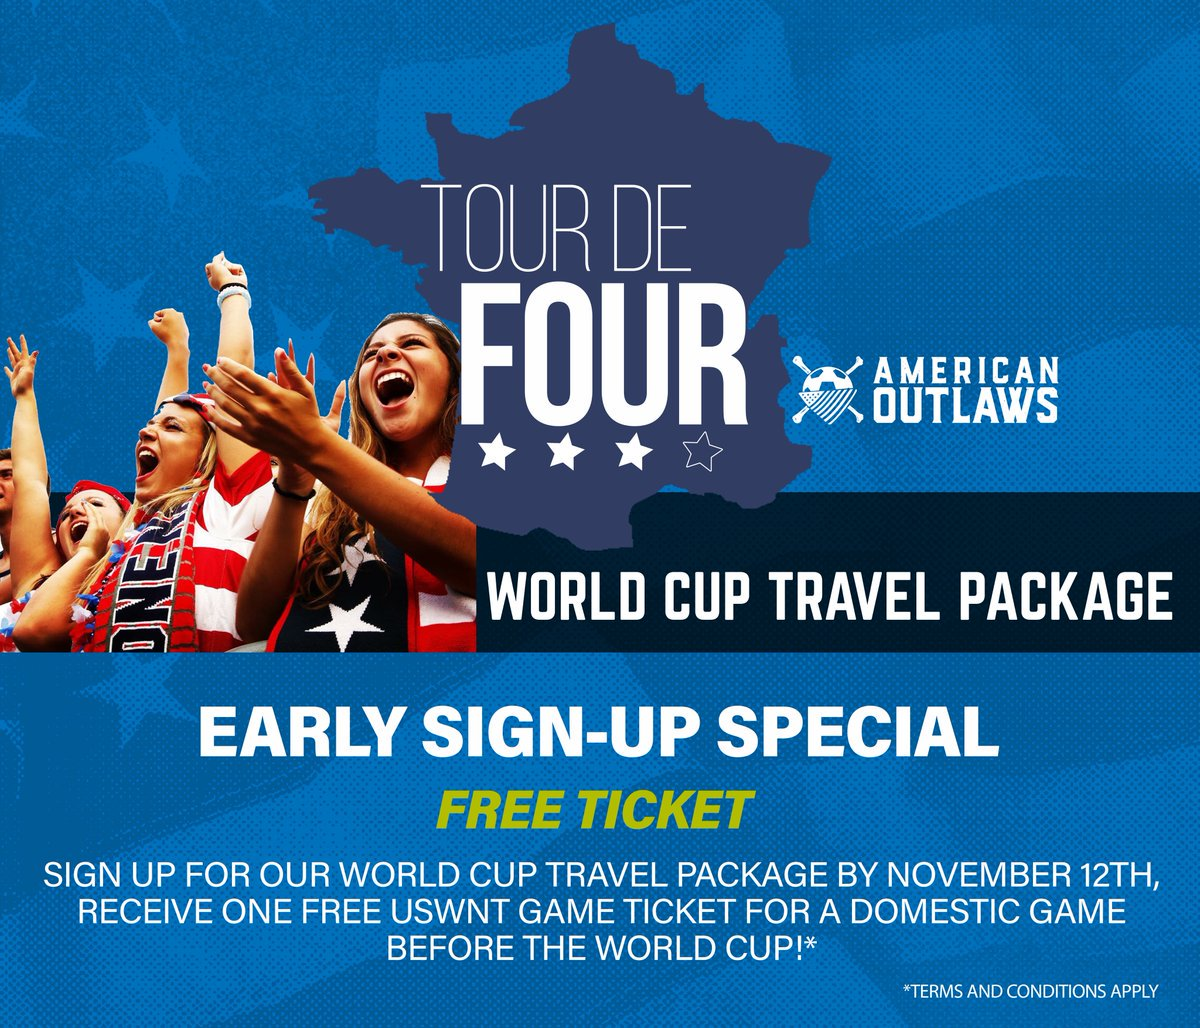 ... travel package) before the team heads to France next summer!  https   www.americanoutlawstravel.com d womens-world-cup-2019  …pic.twitter.com hDU6CMWsfX 25c2304ccba75